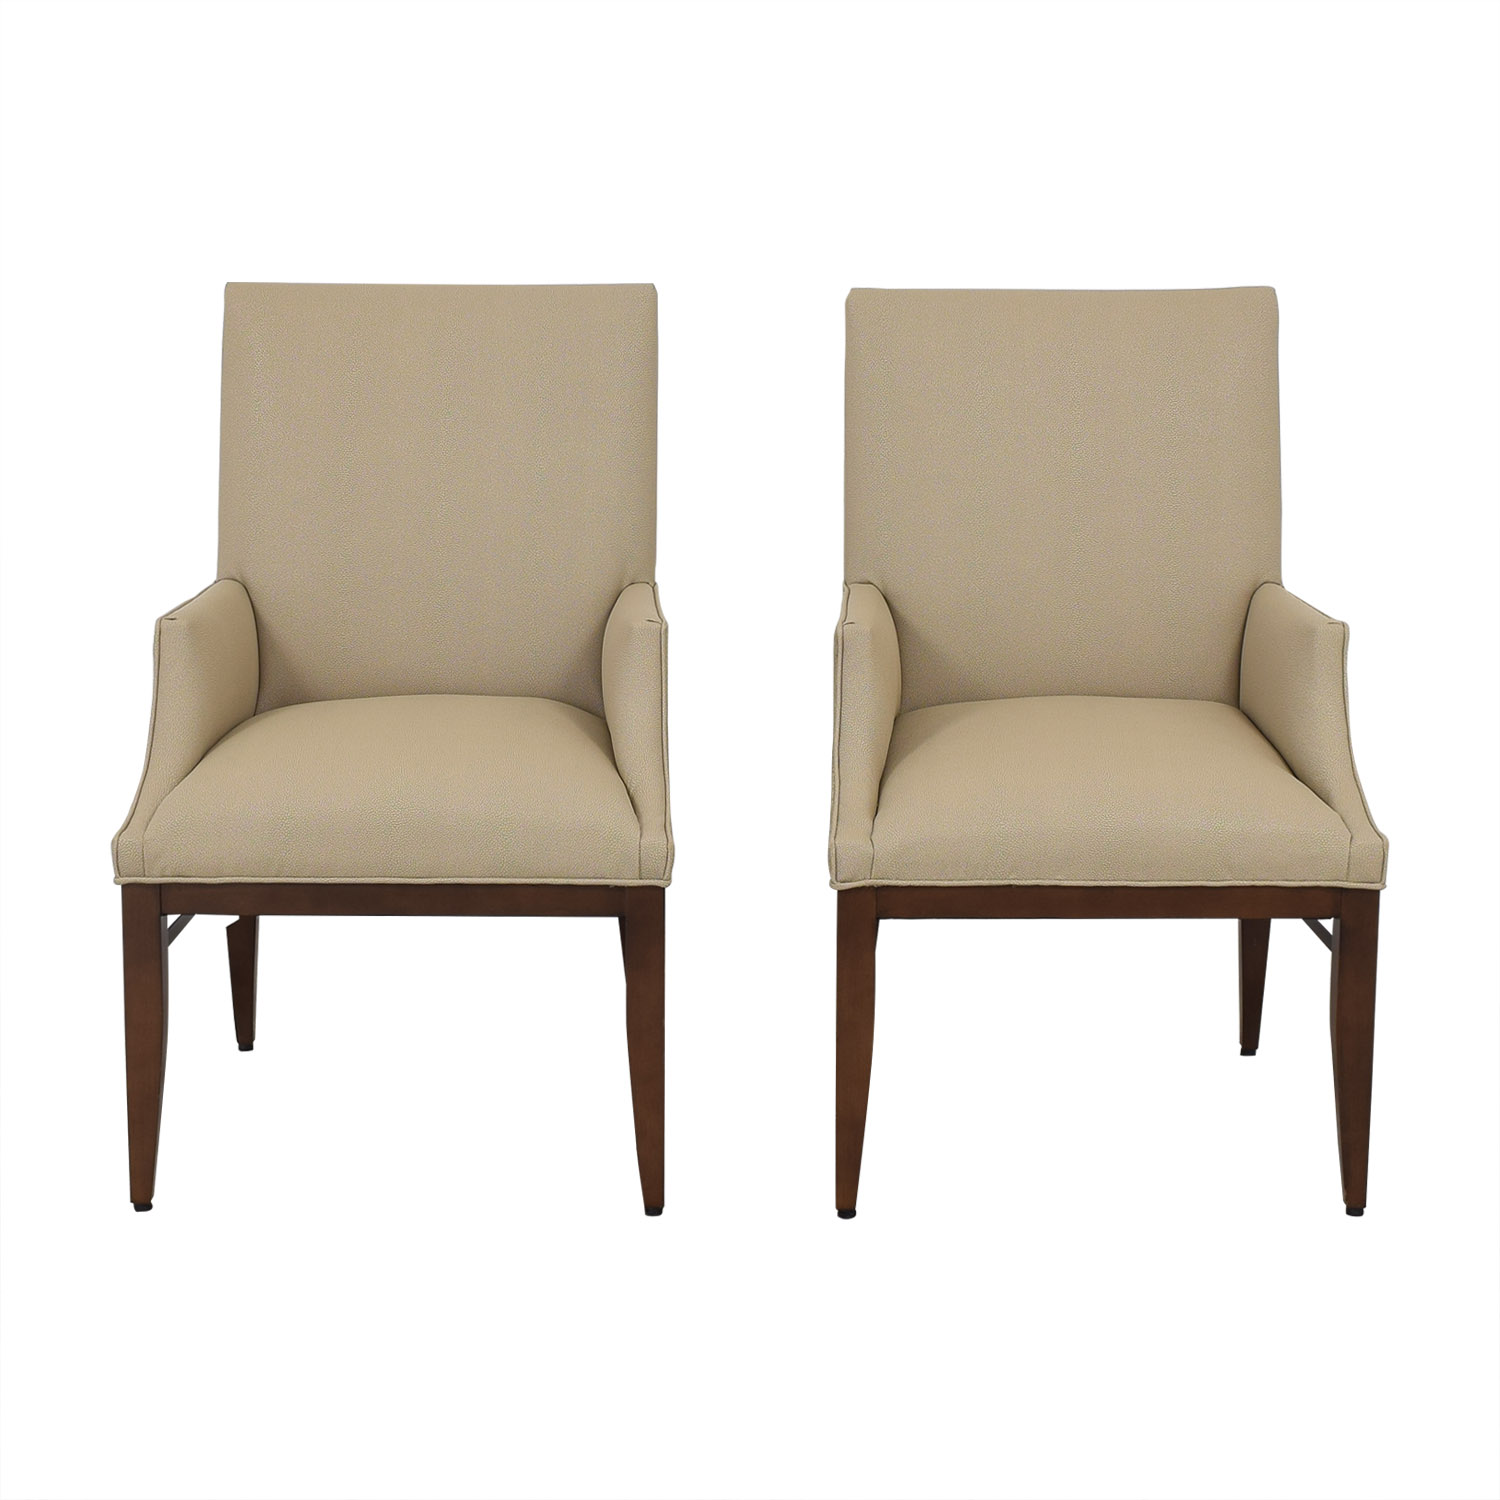 Duralee Duralee Custom Upholstered Dining Arm Chairs